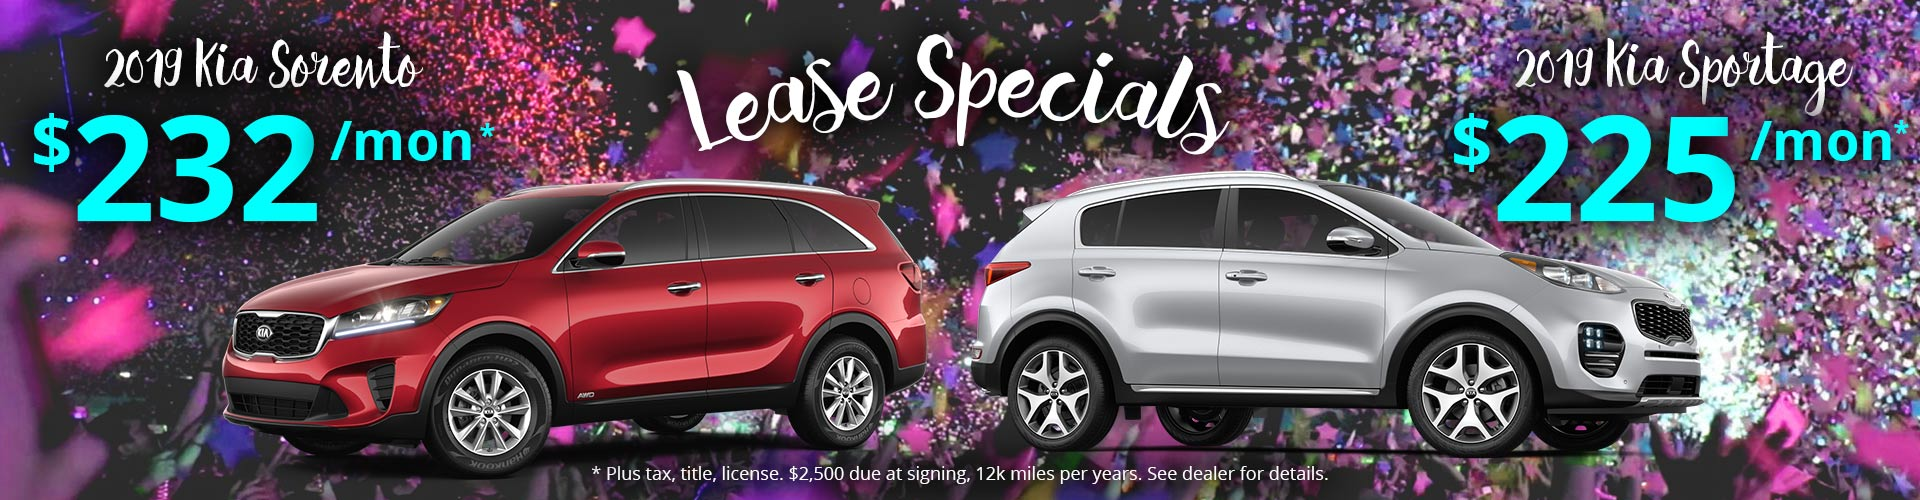 Great Deals on Kia Sportage and Kia Sorento